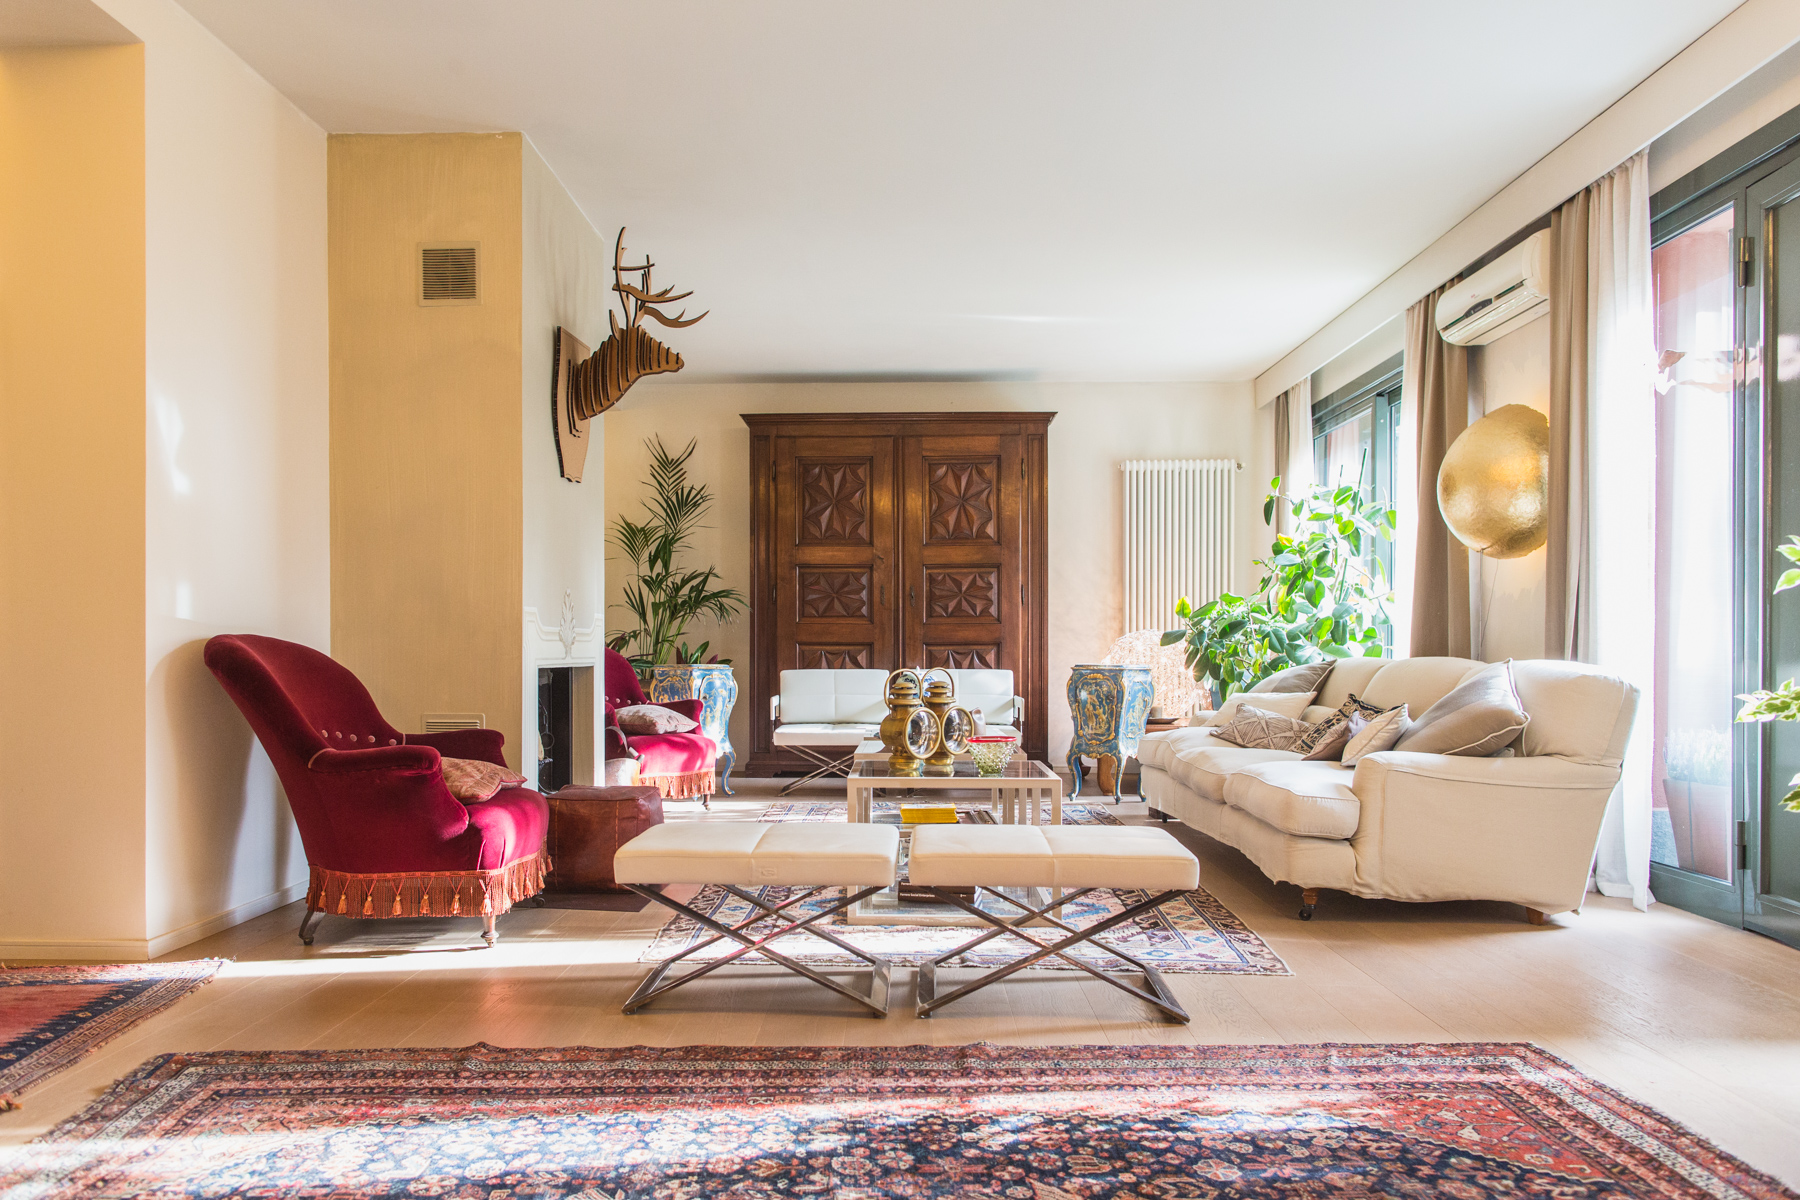 Single Family Home for Sale at Refined apartment in the pre-hill of Turin Via Luisa del Carretto Turin, Turin 10131 Italy